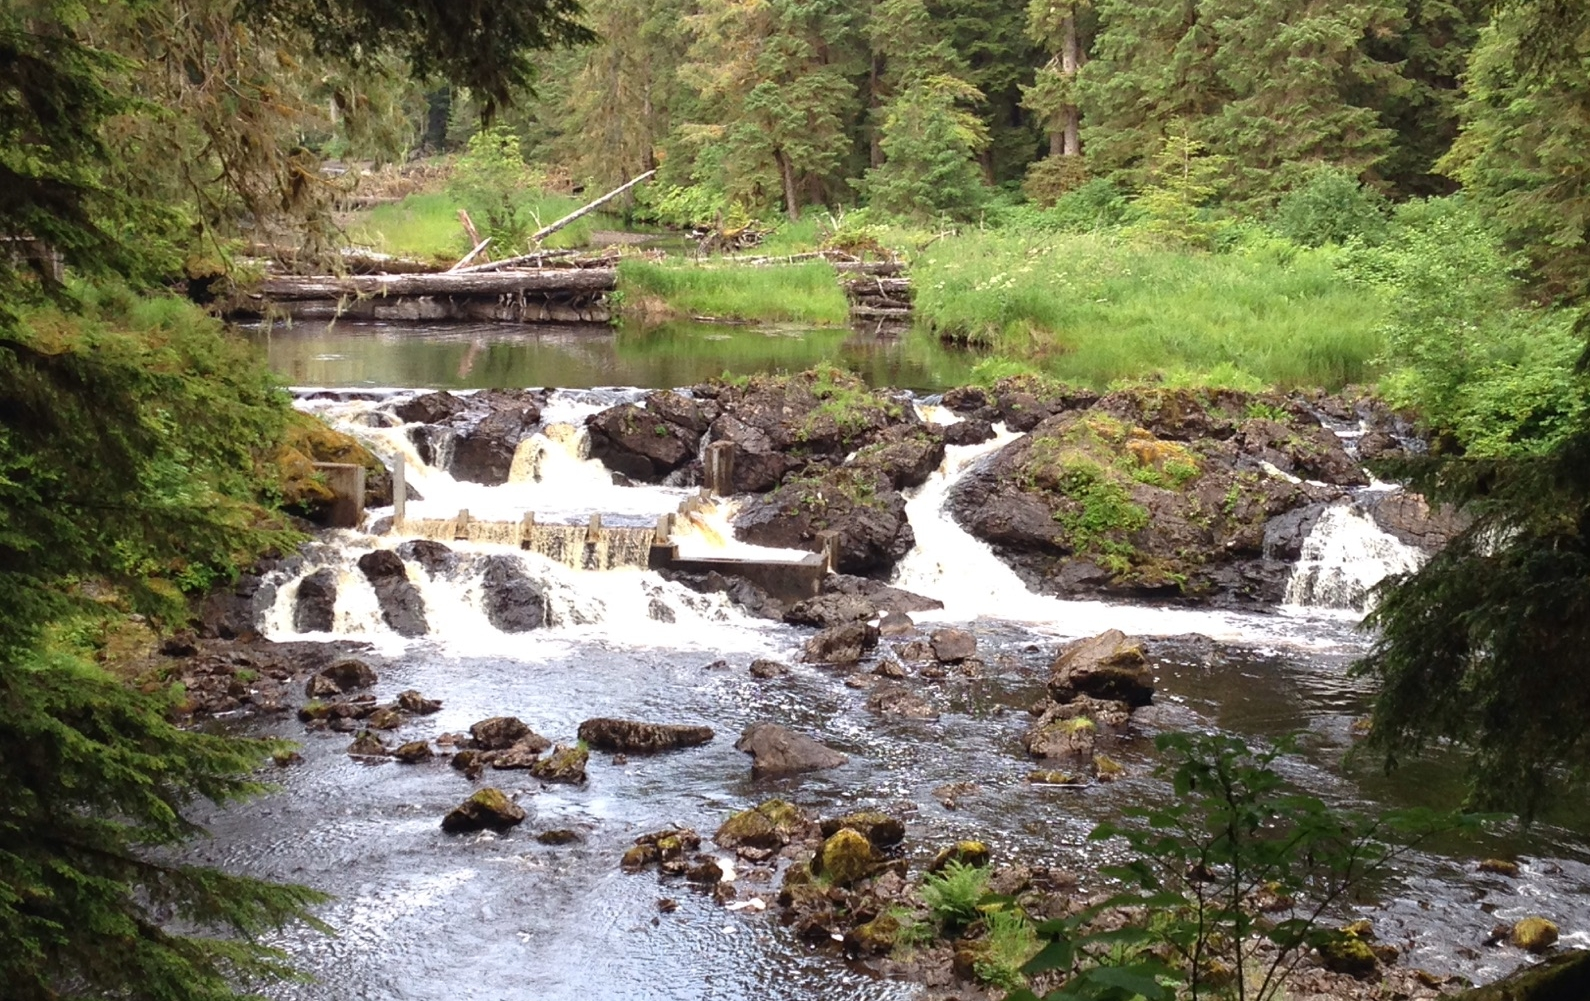 HATCHERY CREEK FISH PASS. NEAR COFFMAN COVE. WHEN THE SALMON RUN - SO DO THE BEARS! WATCH FOR THEM AND REMEMBER: BEARS ALWAYS HAVE THE RIGHT OF WAY! IMAGE: THANKS TO LUKE.